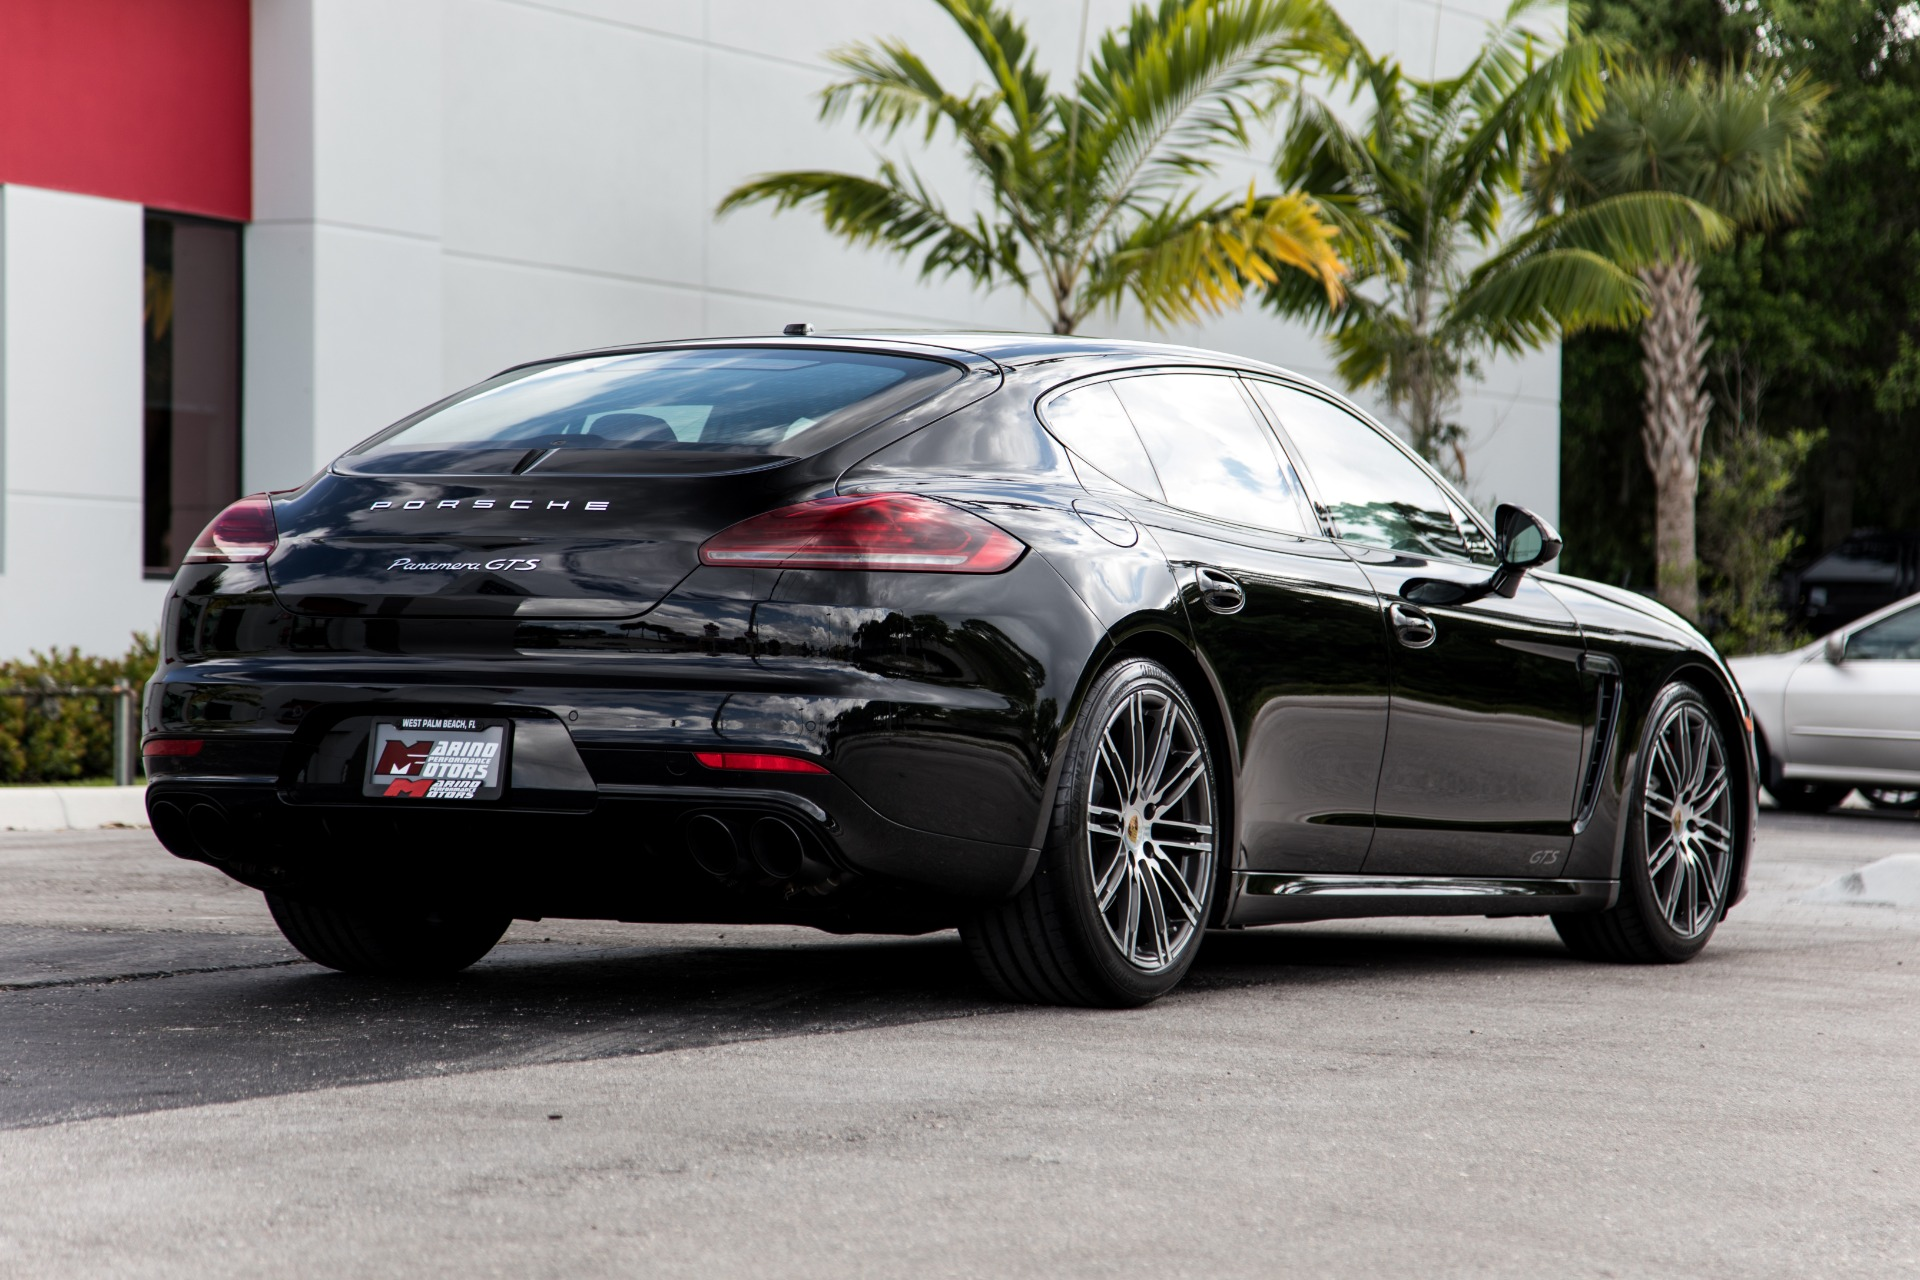 Used 2016 Porsche Panamera Gts For Sale 74 900 Marino Performance Motors Stock 080731